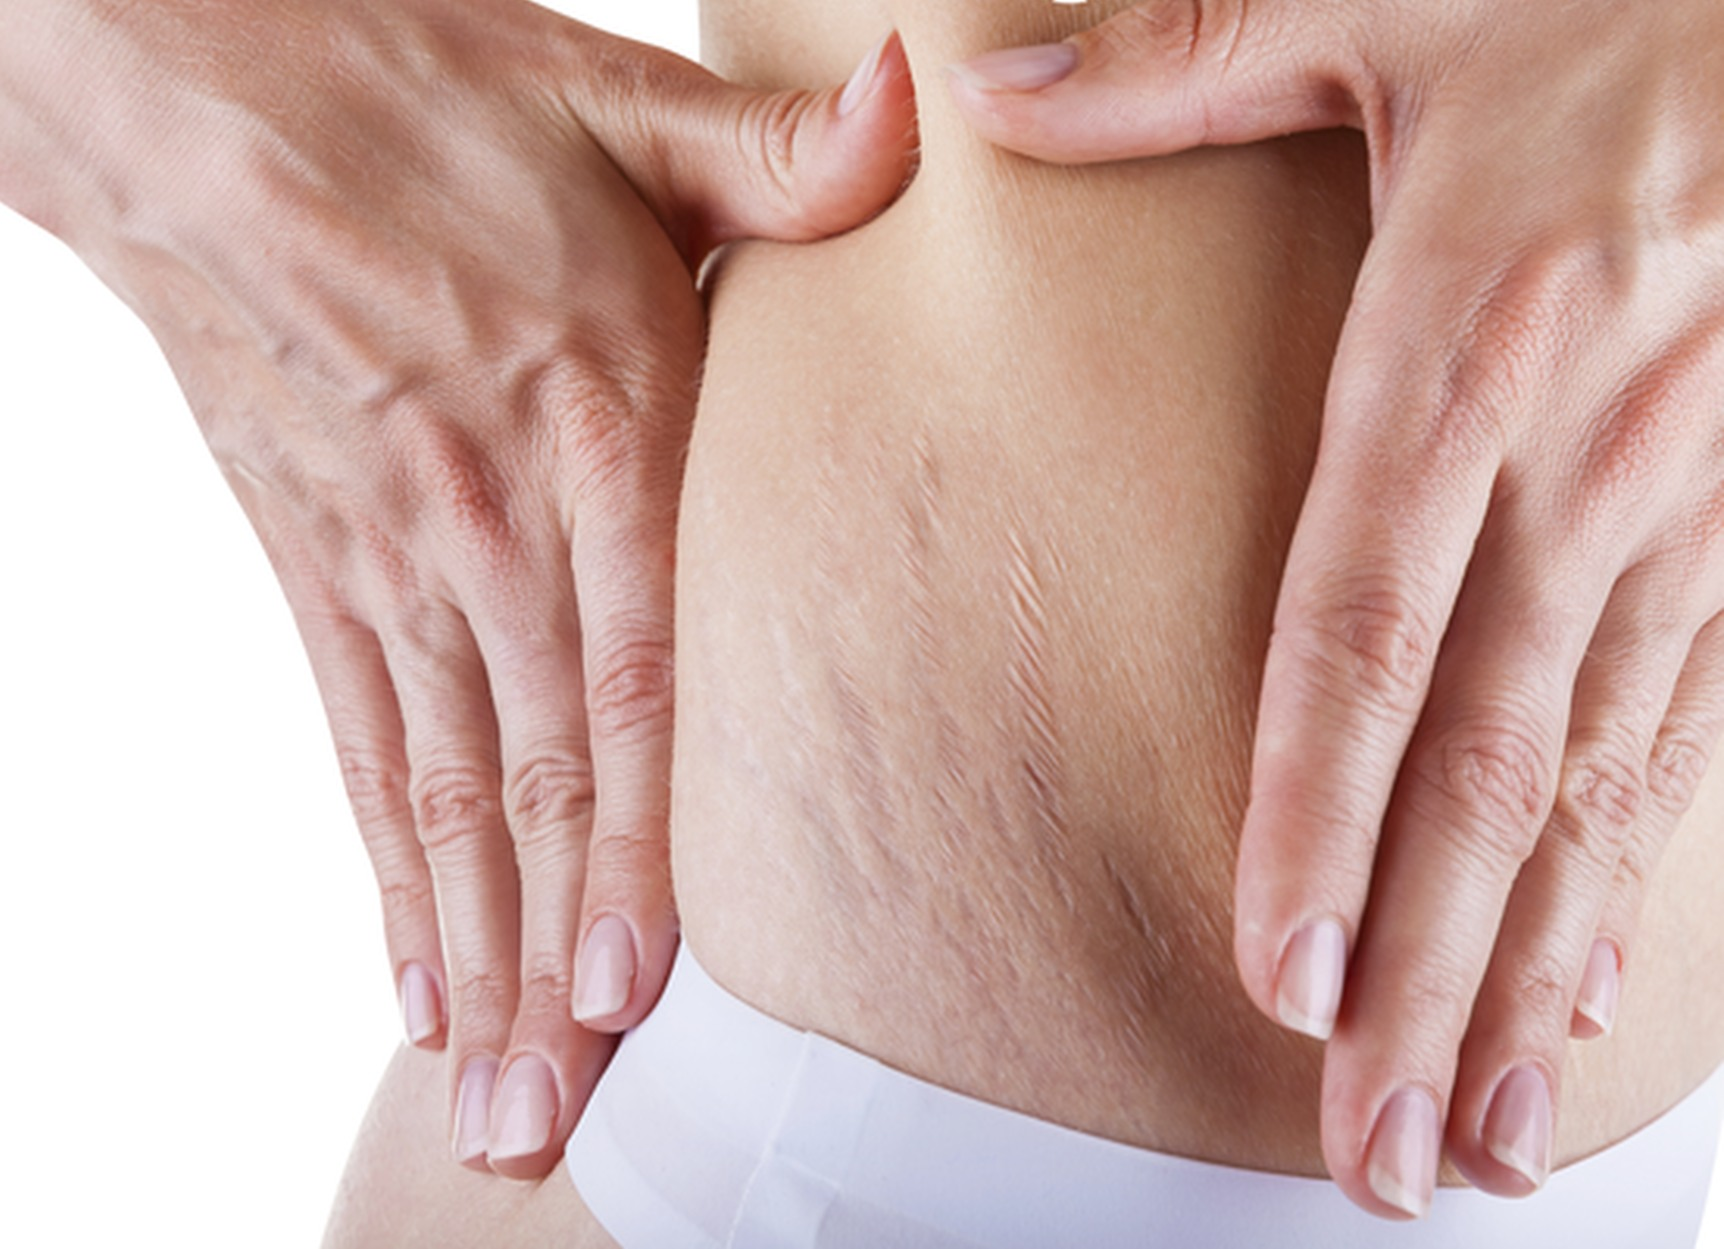 Stretch Mark Treatments with PRP at Restore Beauty Loveland